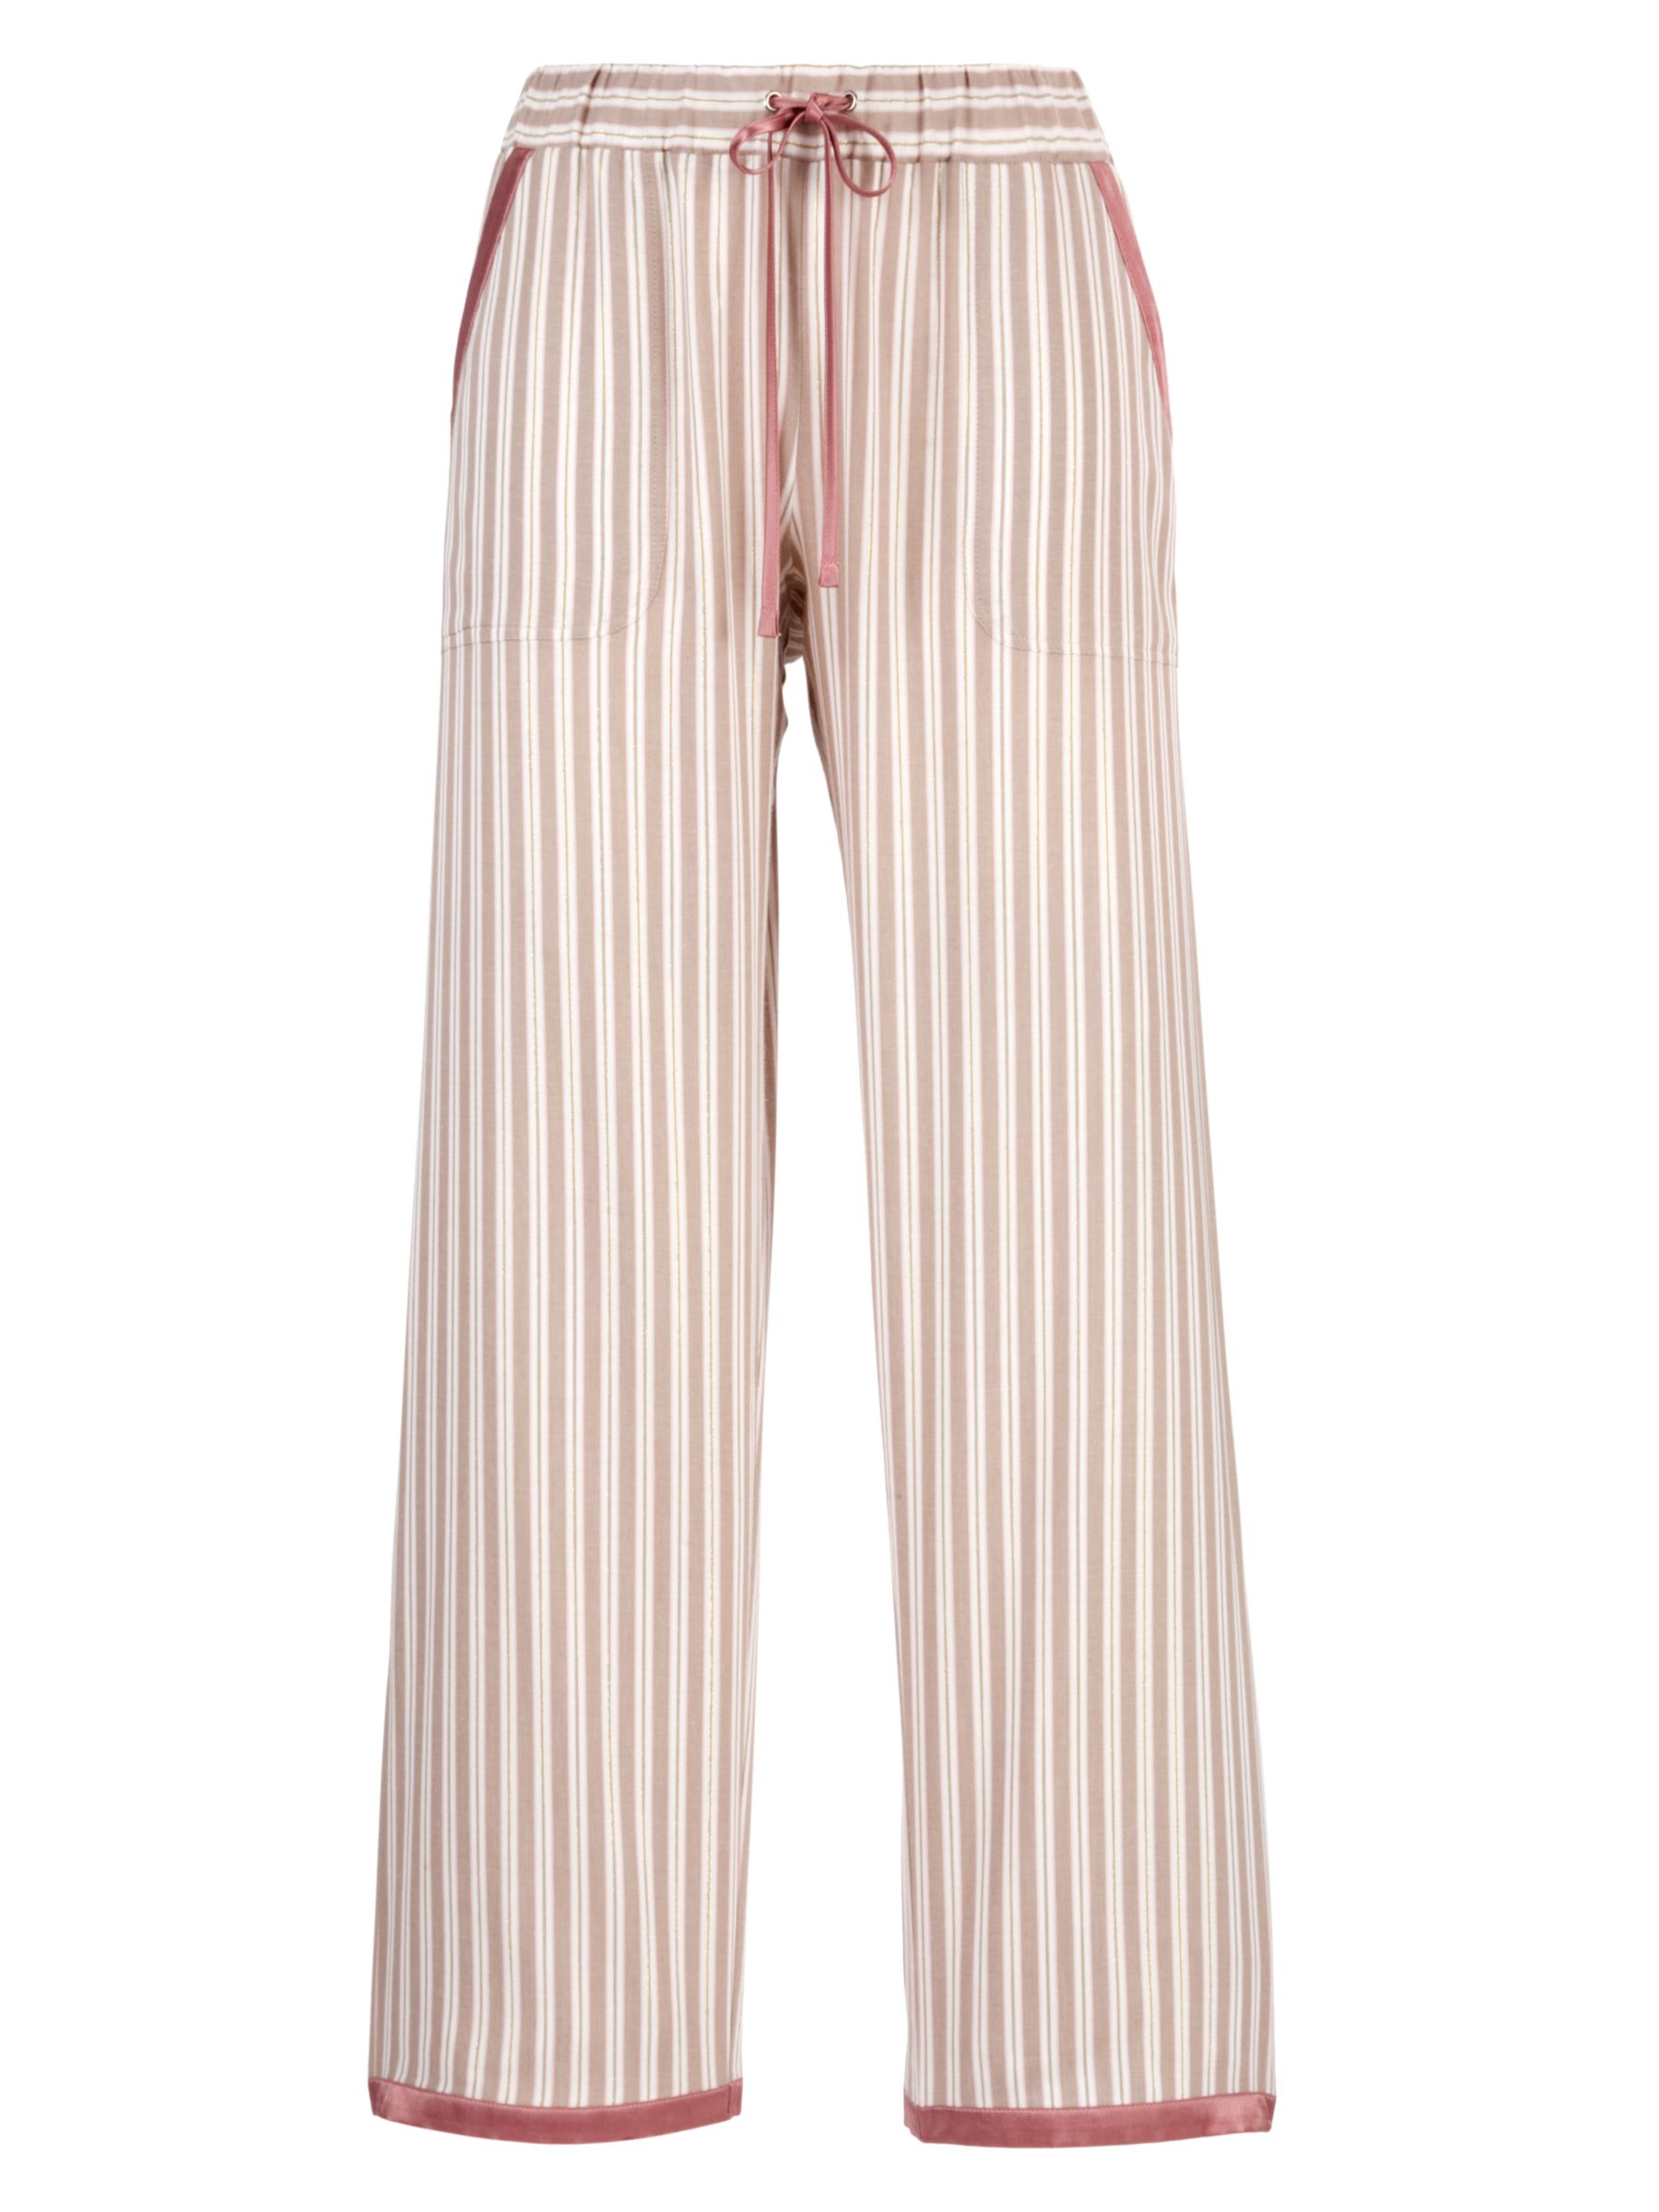 Cyberjammies Dune Stripe Pyjama Trousers, Rose